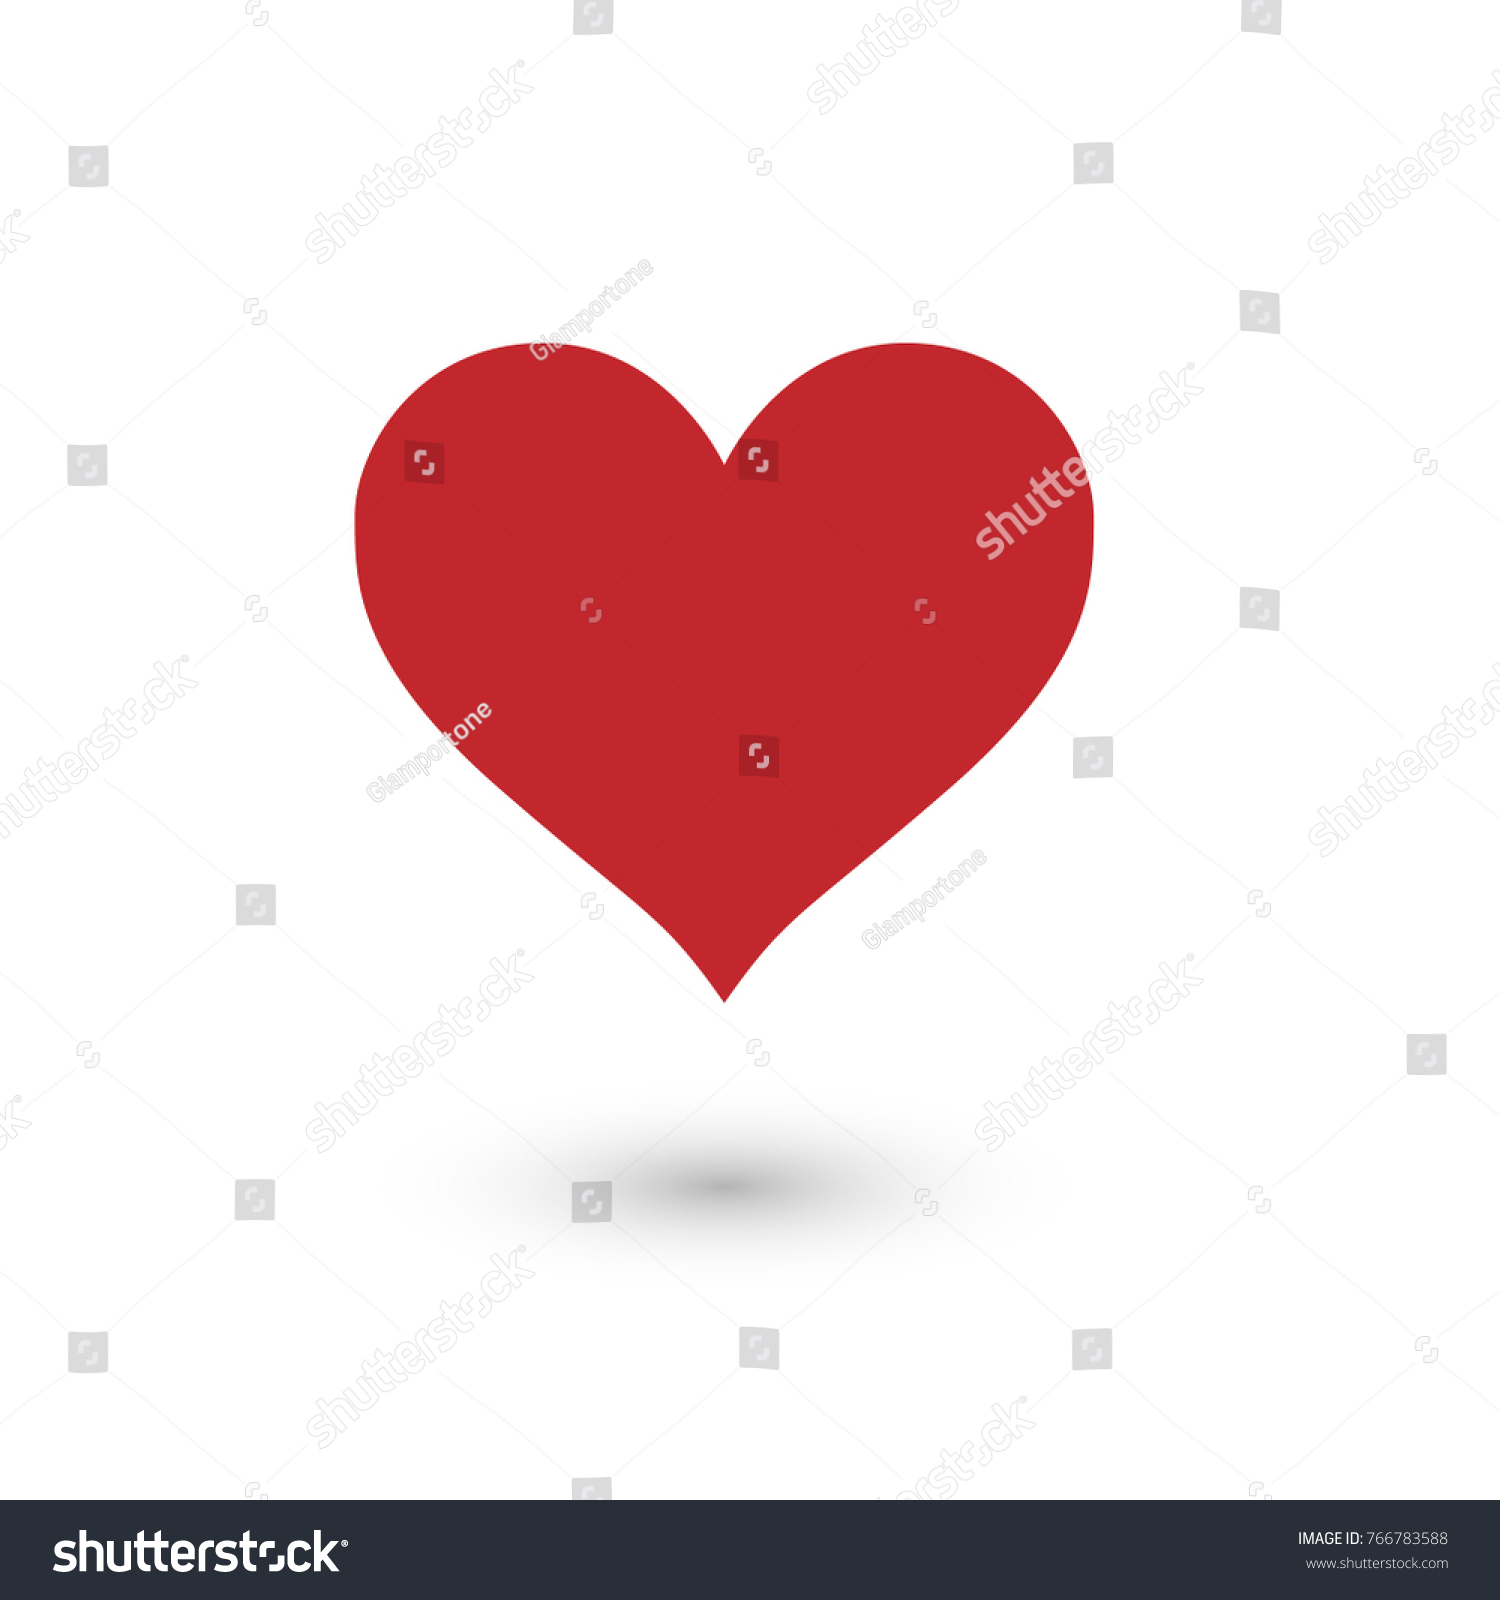 Big red heart symbol love isolated stock vector 766783588 big red heart symbol of love isolated vector icon buycottarizona Image collections